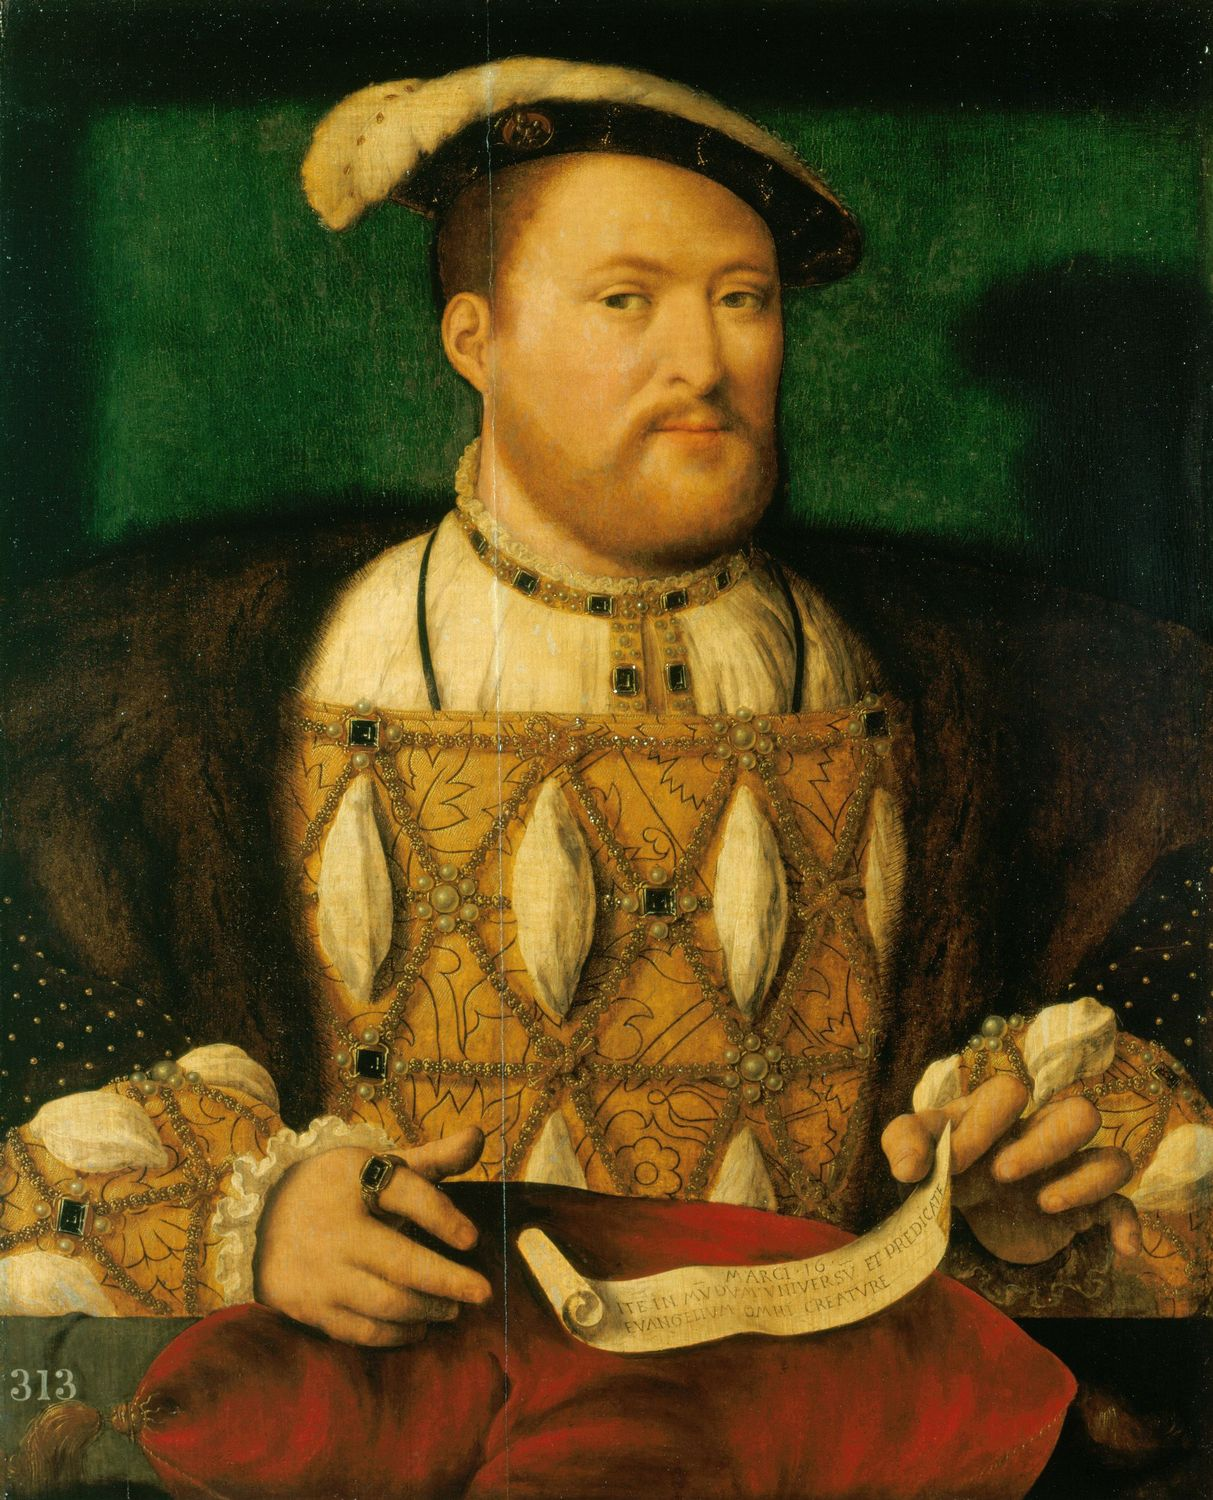 a biography of king henry viii of england